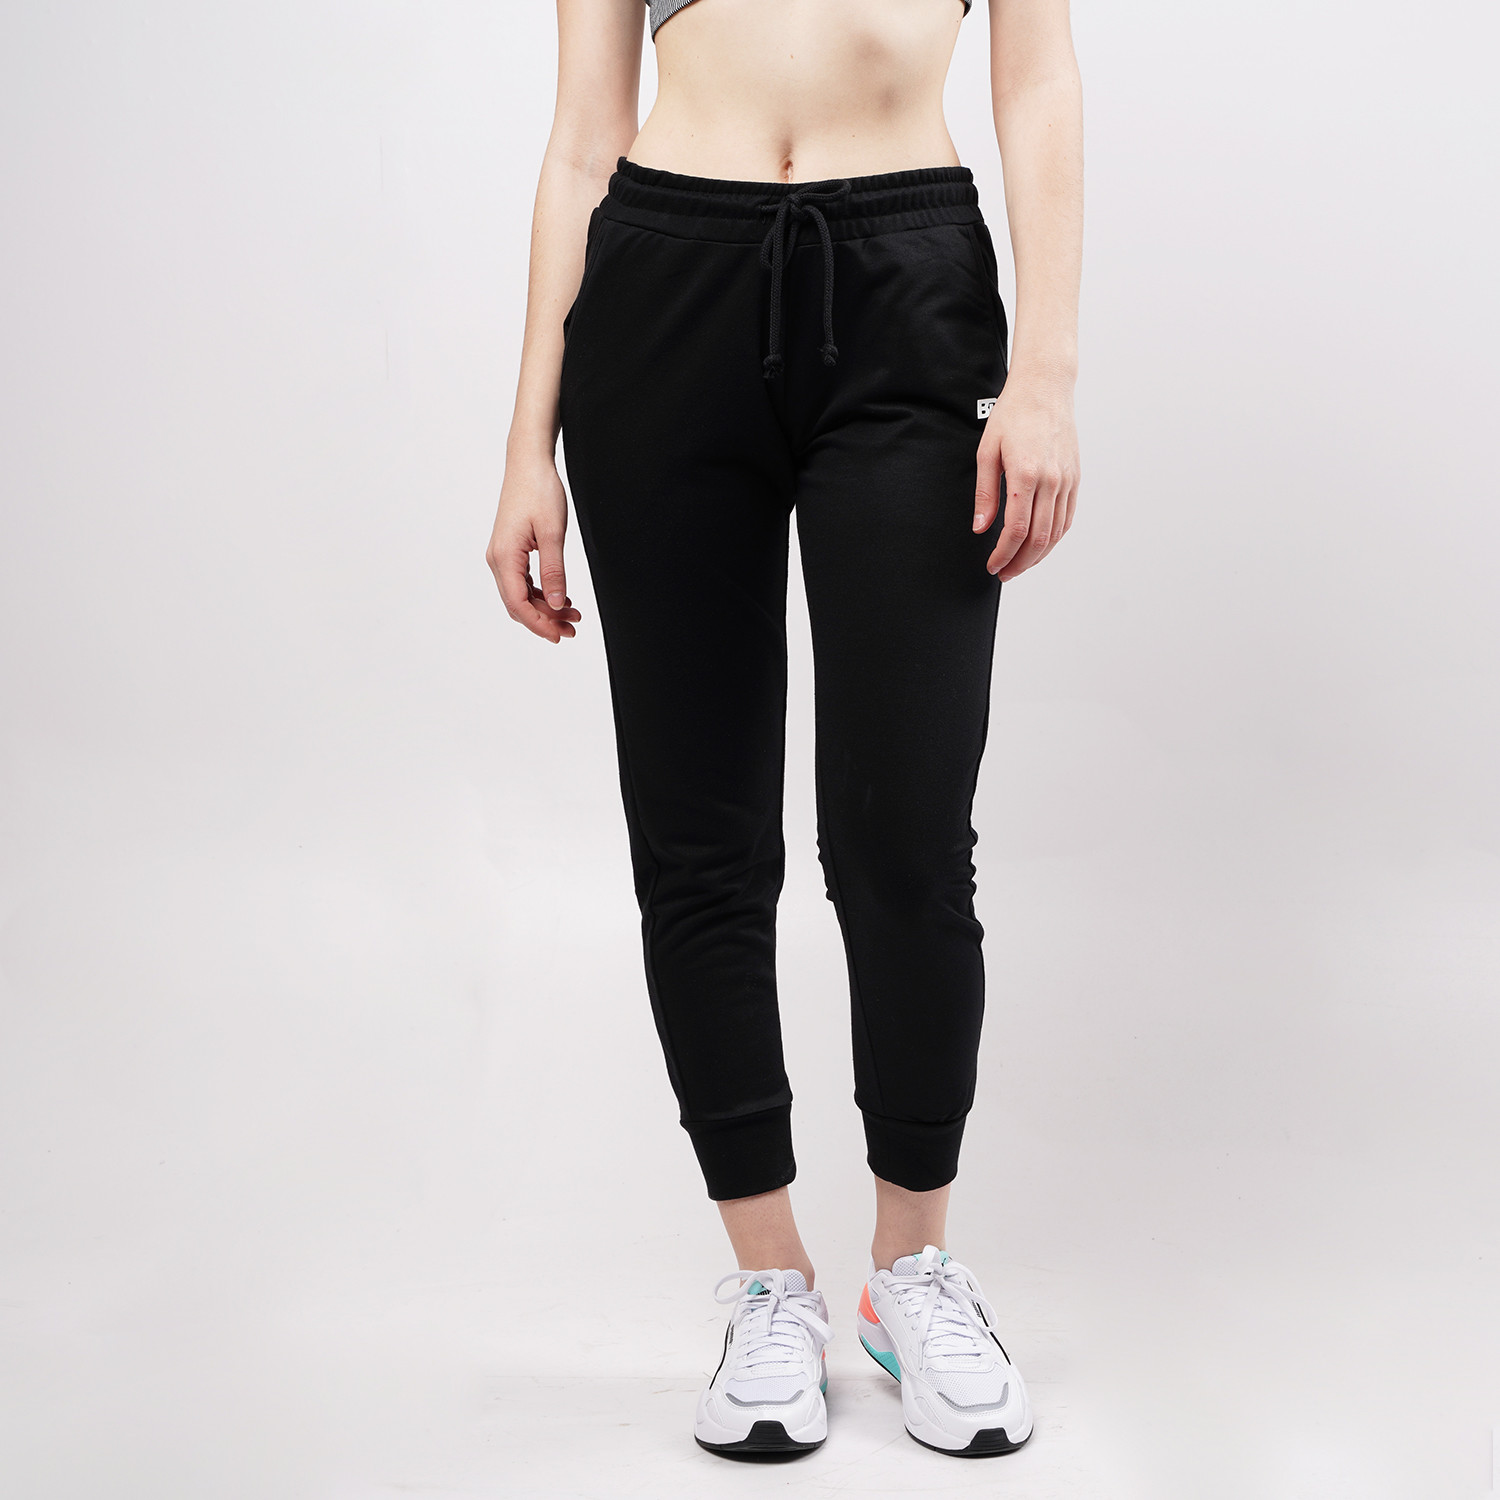 Body Action Women'S Relaxed Joggers (9000076683_1899)